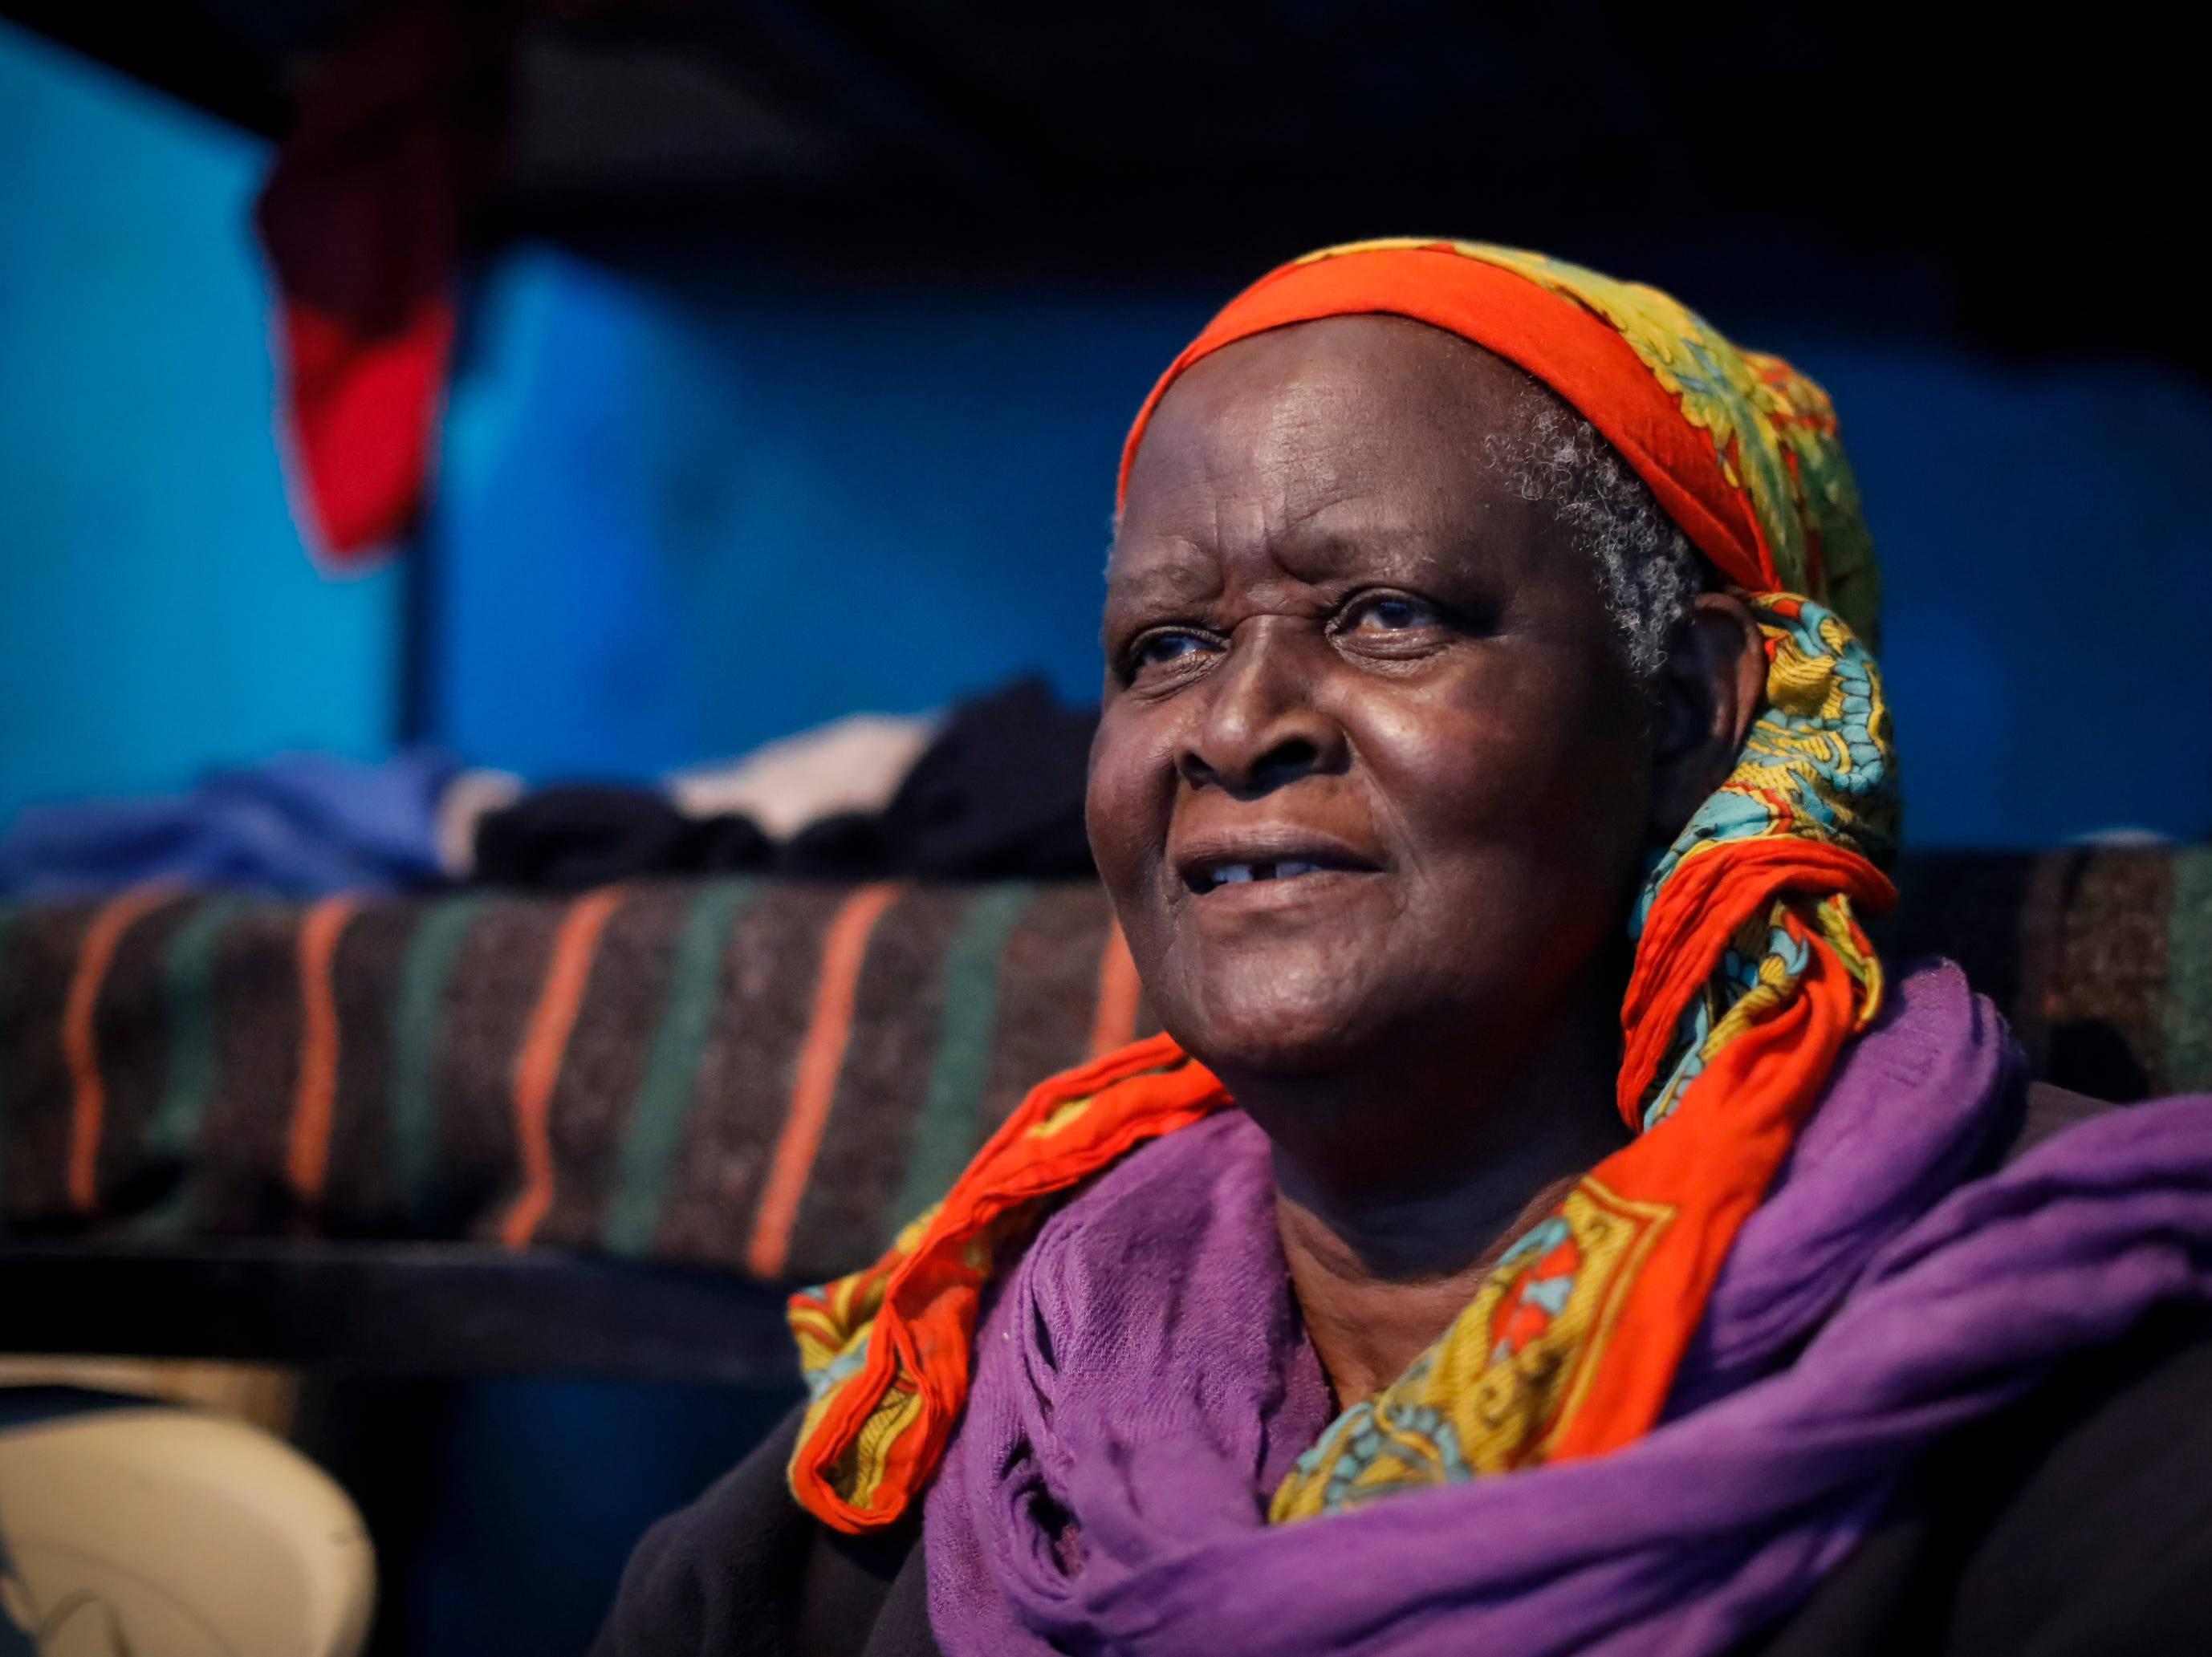 Sixty eight-year-old Lona Madanyi, is the founder of Fruitful Rescue Center, a slum orphanage for the children living with HIV and others who lost their parents for different reasons including AIDS, in Nairobi, Kenya. According to the 2017 figures released by UNAIDS, the Joint United Nations Programme on HIV/AIDS, some 110,000 children aged under 14 live with HIV in Kenya, which has the joint fourth largest epidemic in the world along with Uganda and Mozambique with some 1.5 million people infected with HIV. Sub-Saharan Africa accounts for 90 percent of the world's 2 million HIV-positive children.